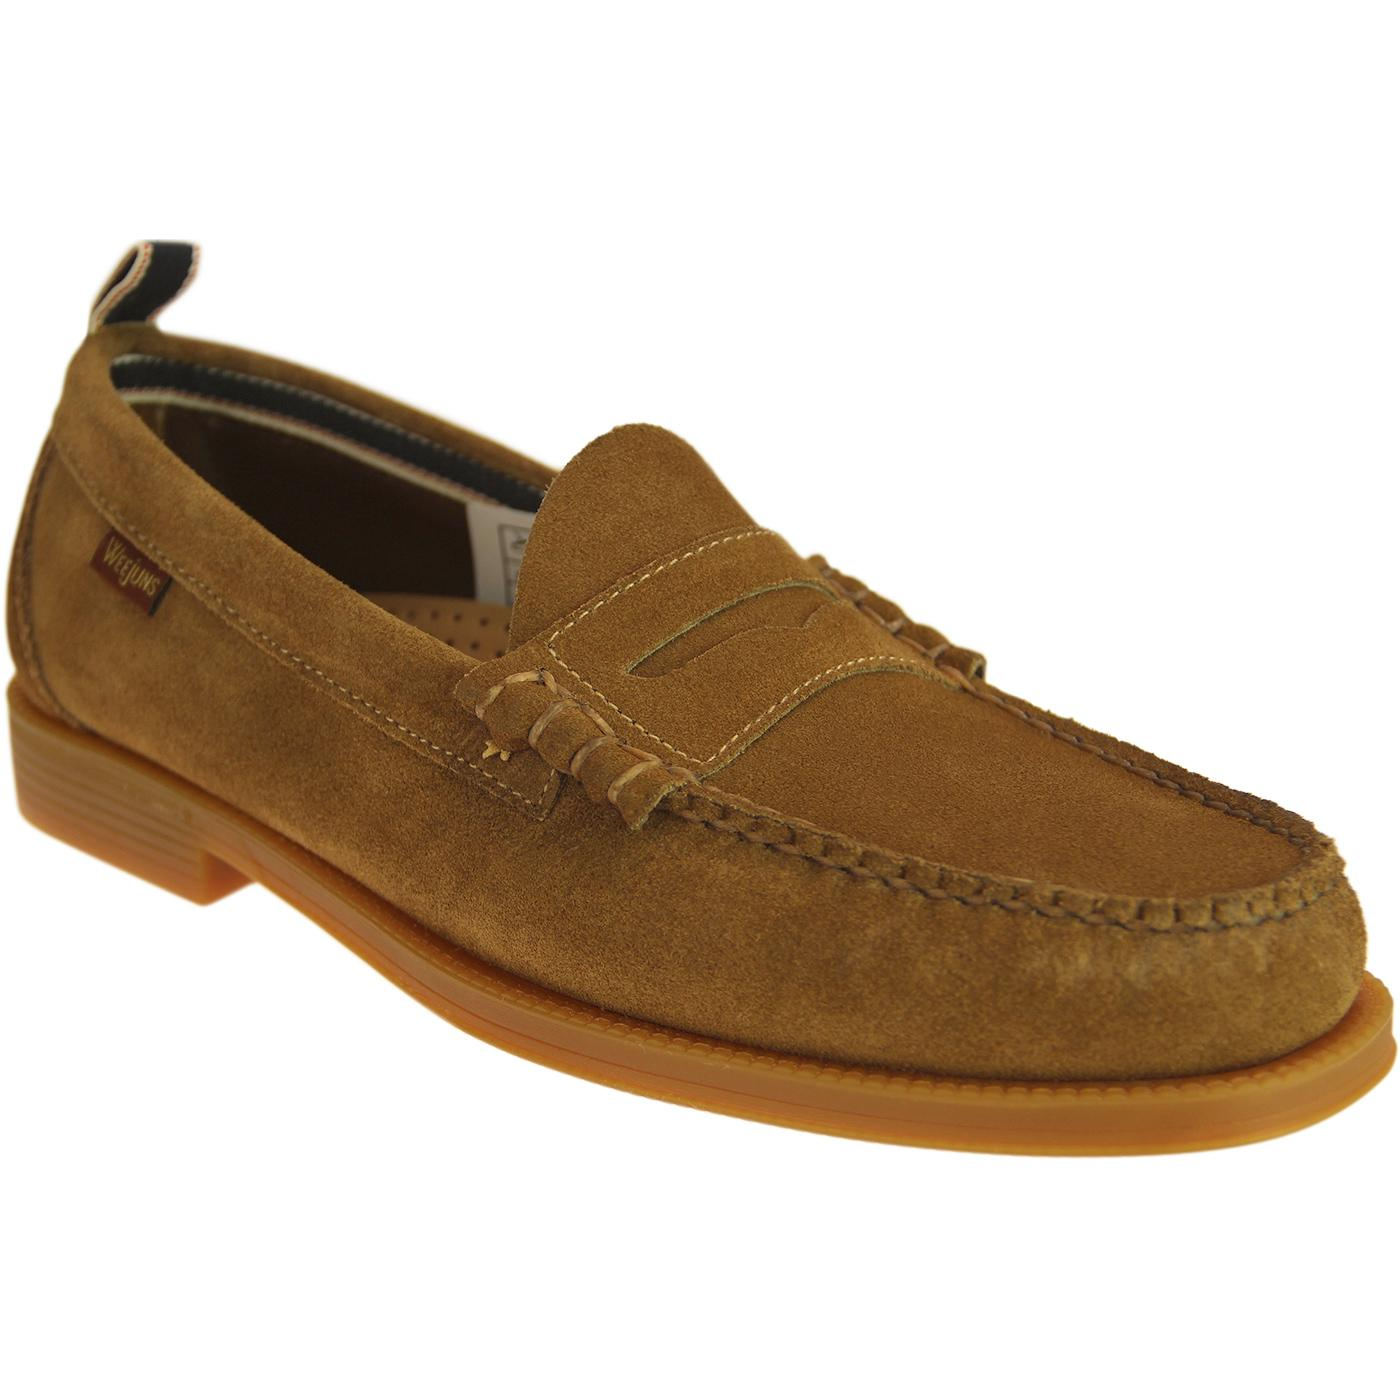 Larson Suede BASS WEEJUNS Retro Beef Roll Loafers